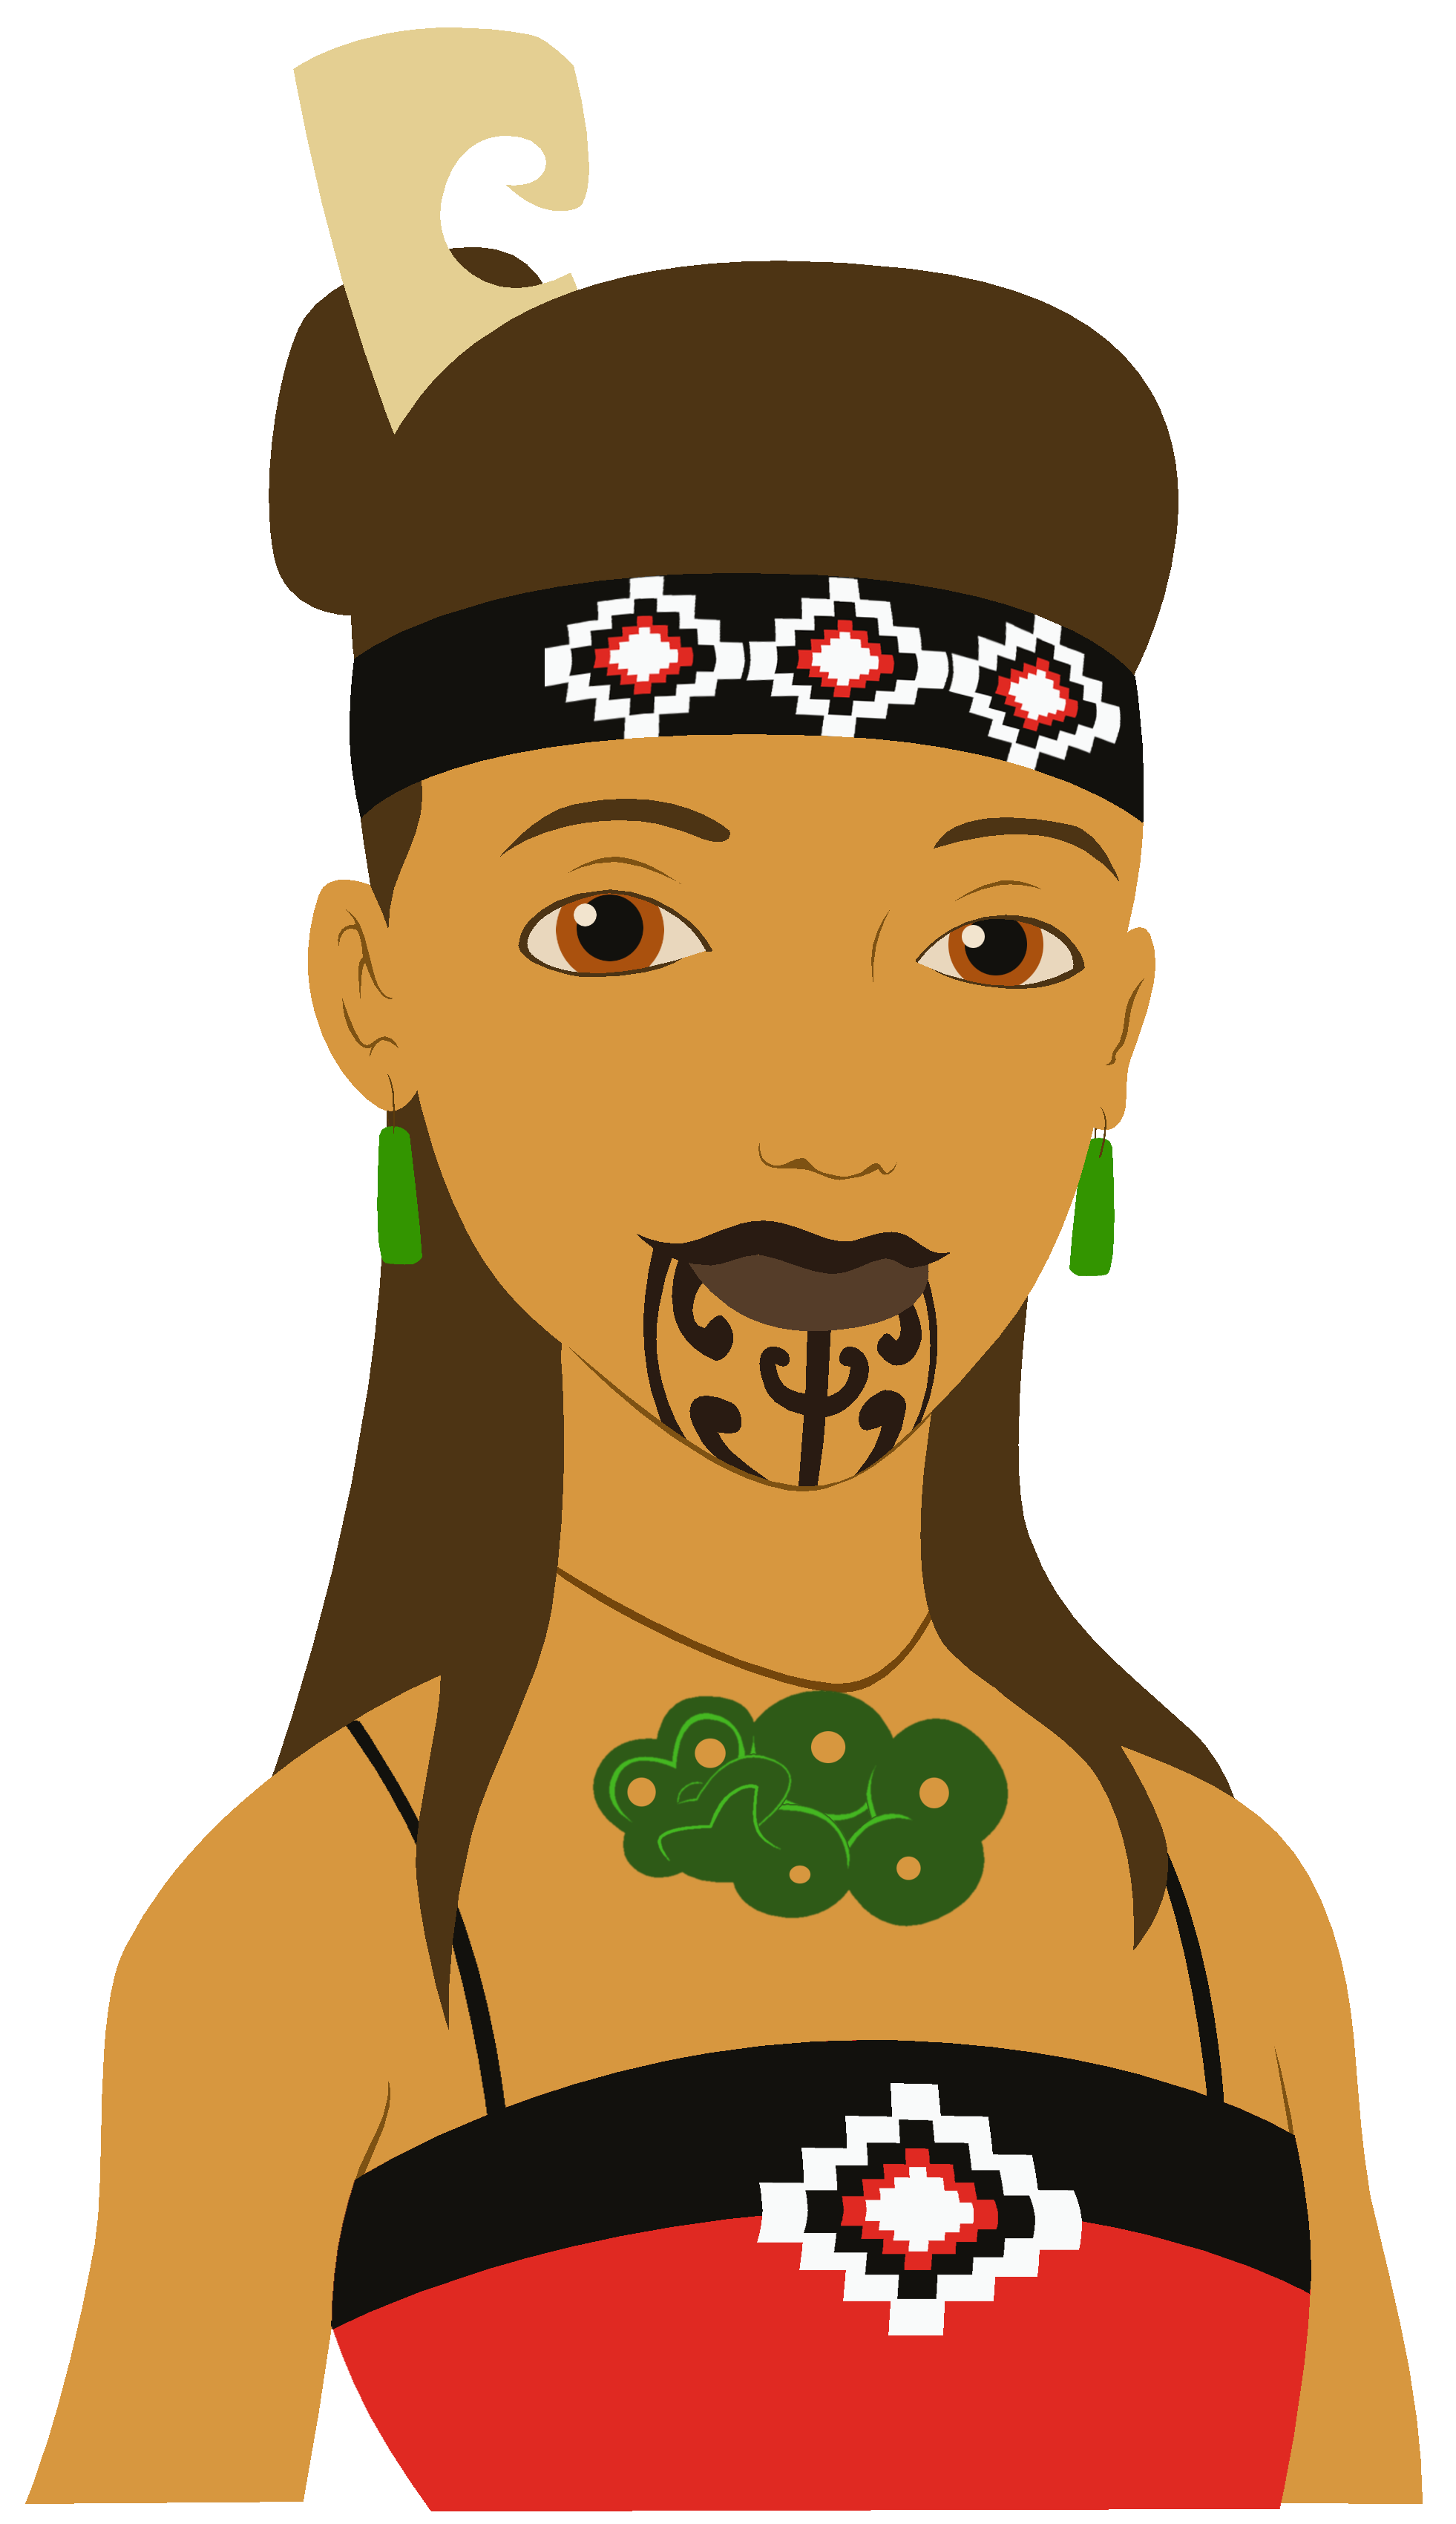 Poetry clipart learning journal. Image result for maori